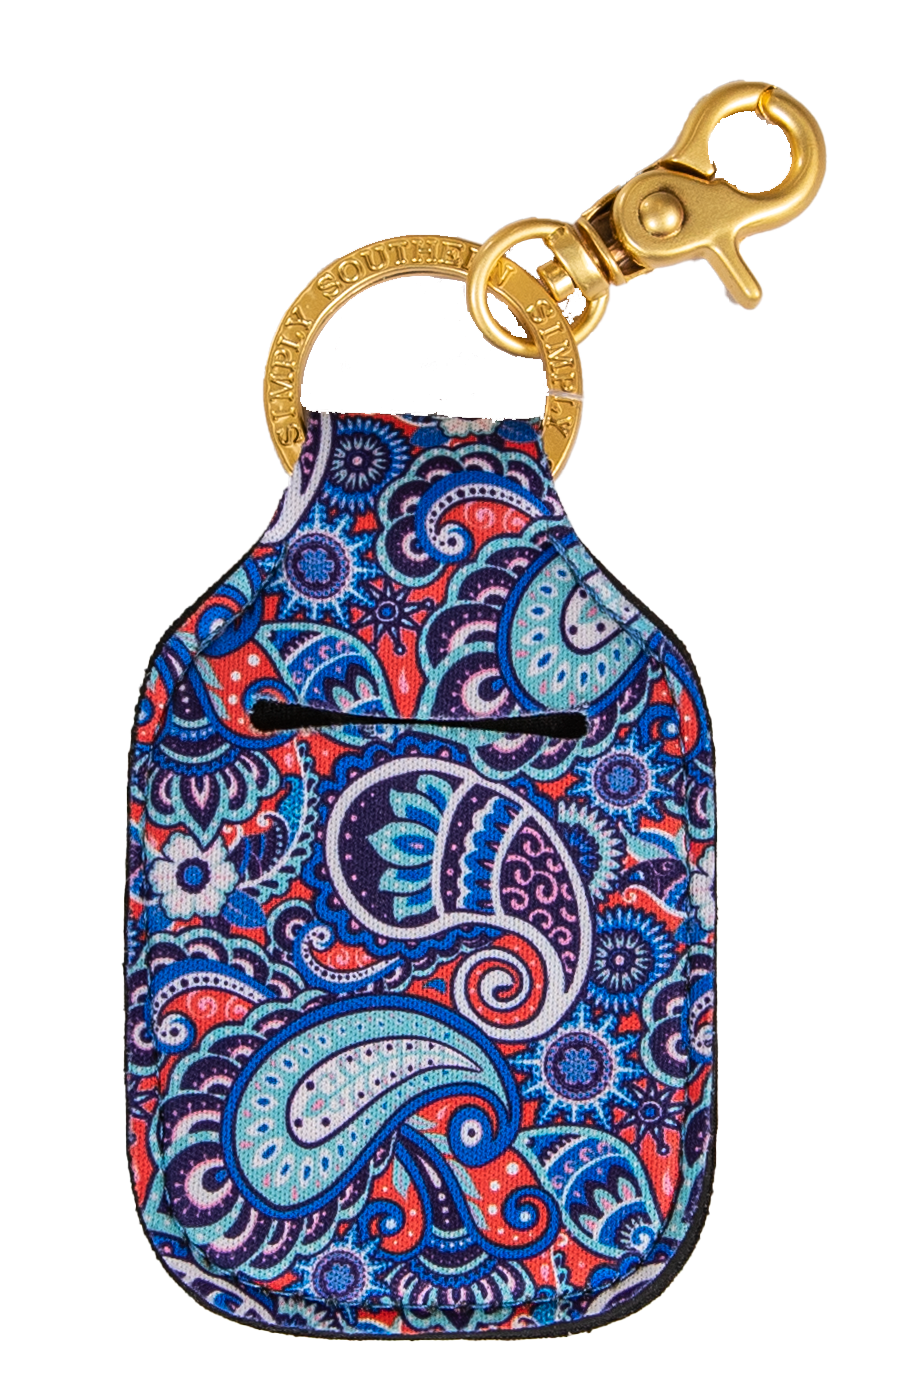 Keychain Sanitizer Holder - Paisley